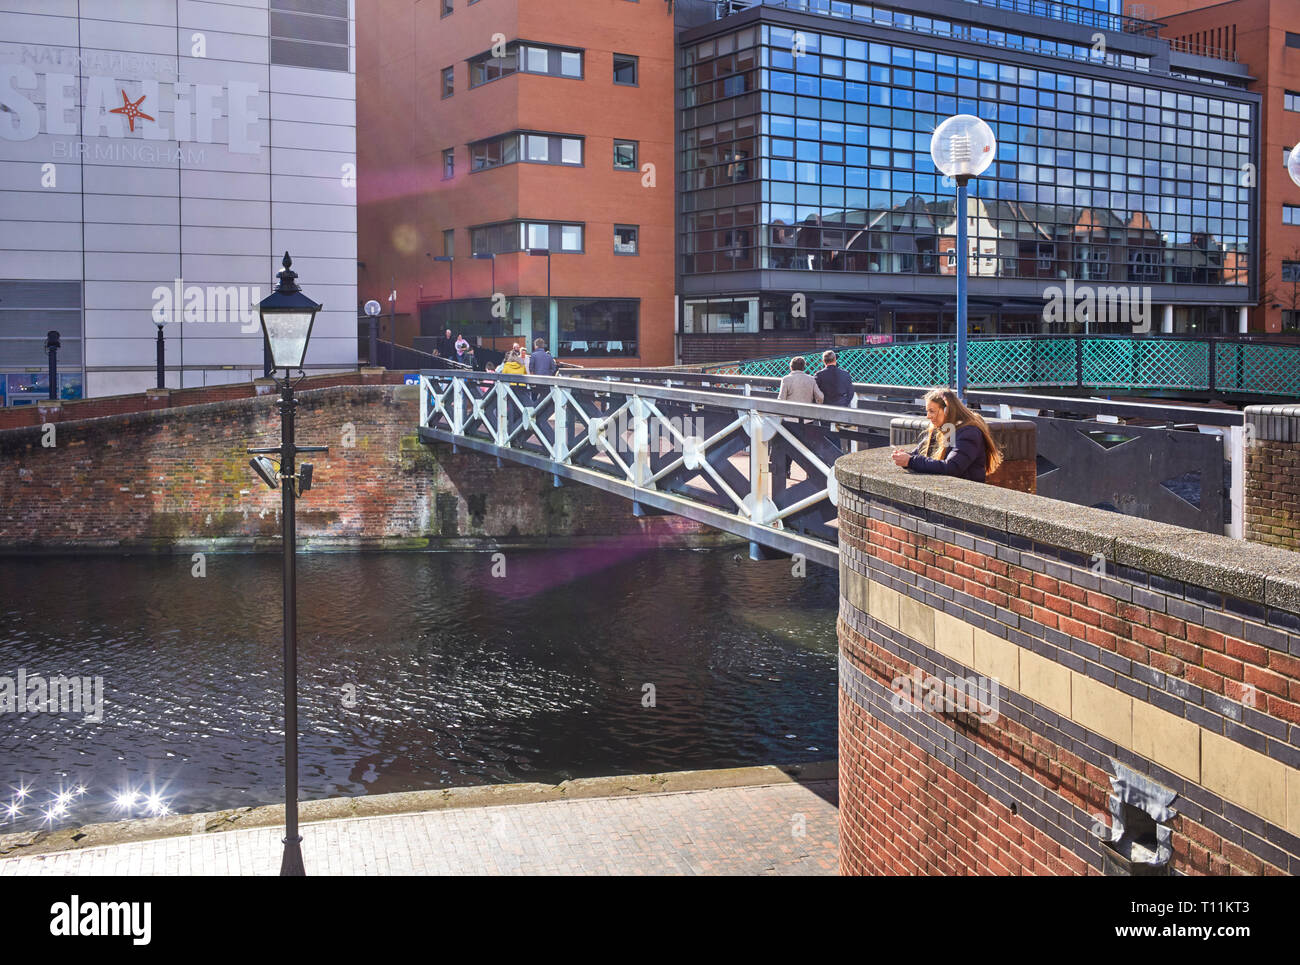 National Sealife Birmingham next to the canal with naturally occuring lens flare - Stock Image